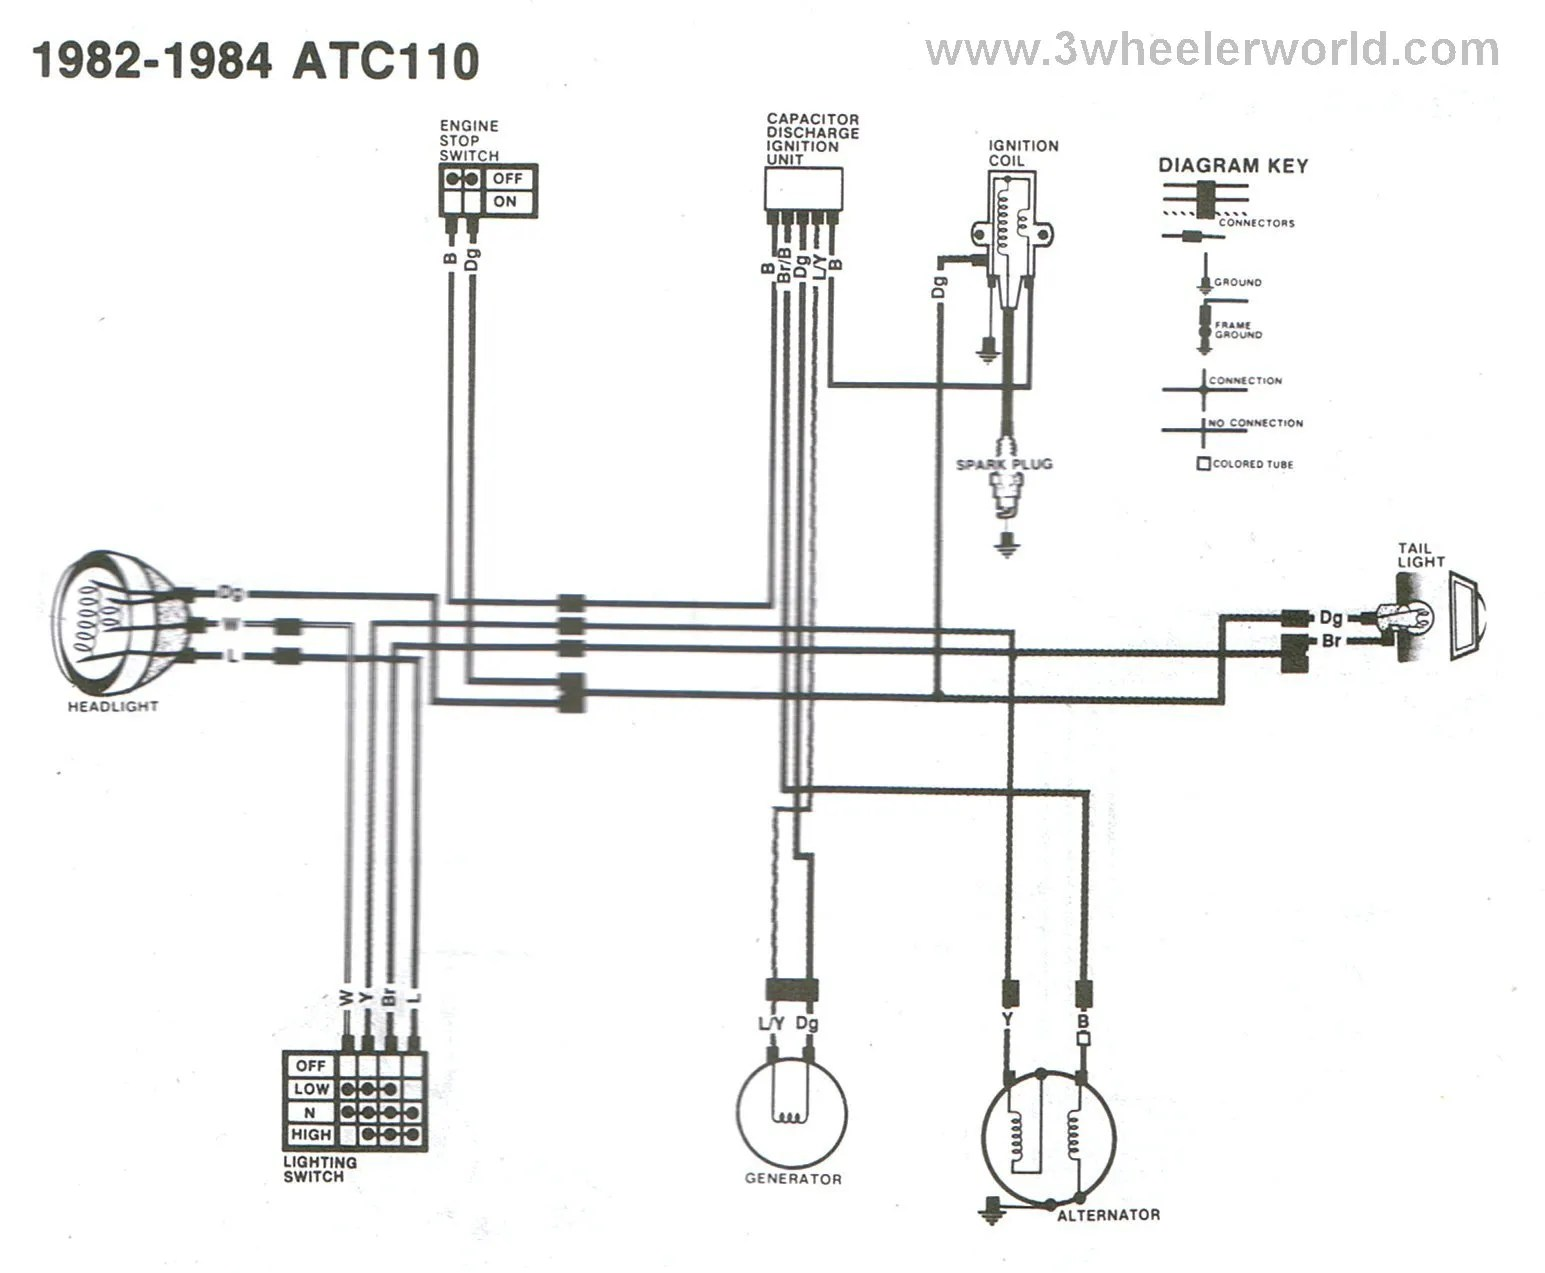 hight resolution of atc 110 wiring diagram wiring diagram for you honda wave 110 wiring diagram 3 wheeler world